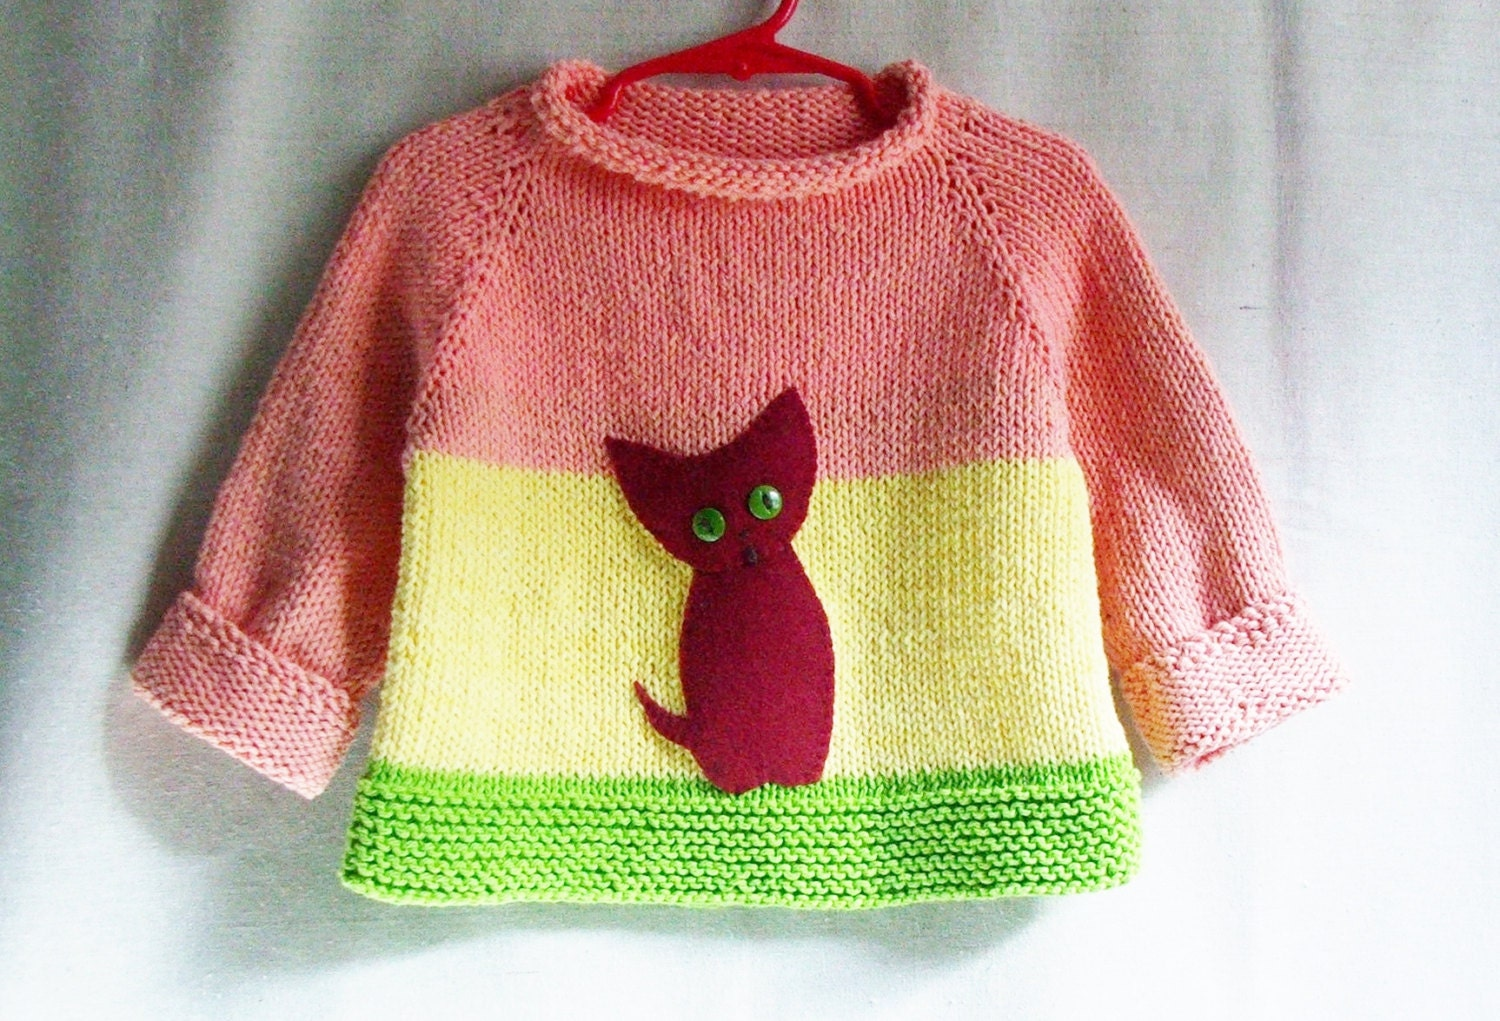 Baby Girl Sweater 100% Cotton Pullover with Kitten Applique